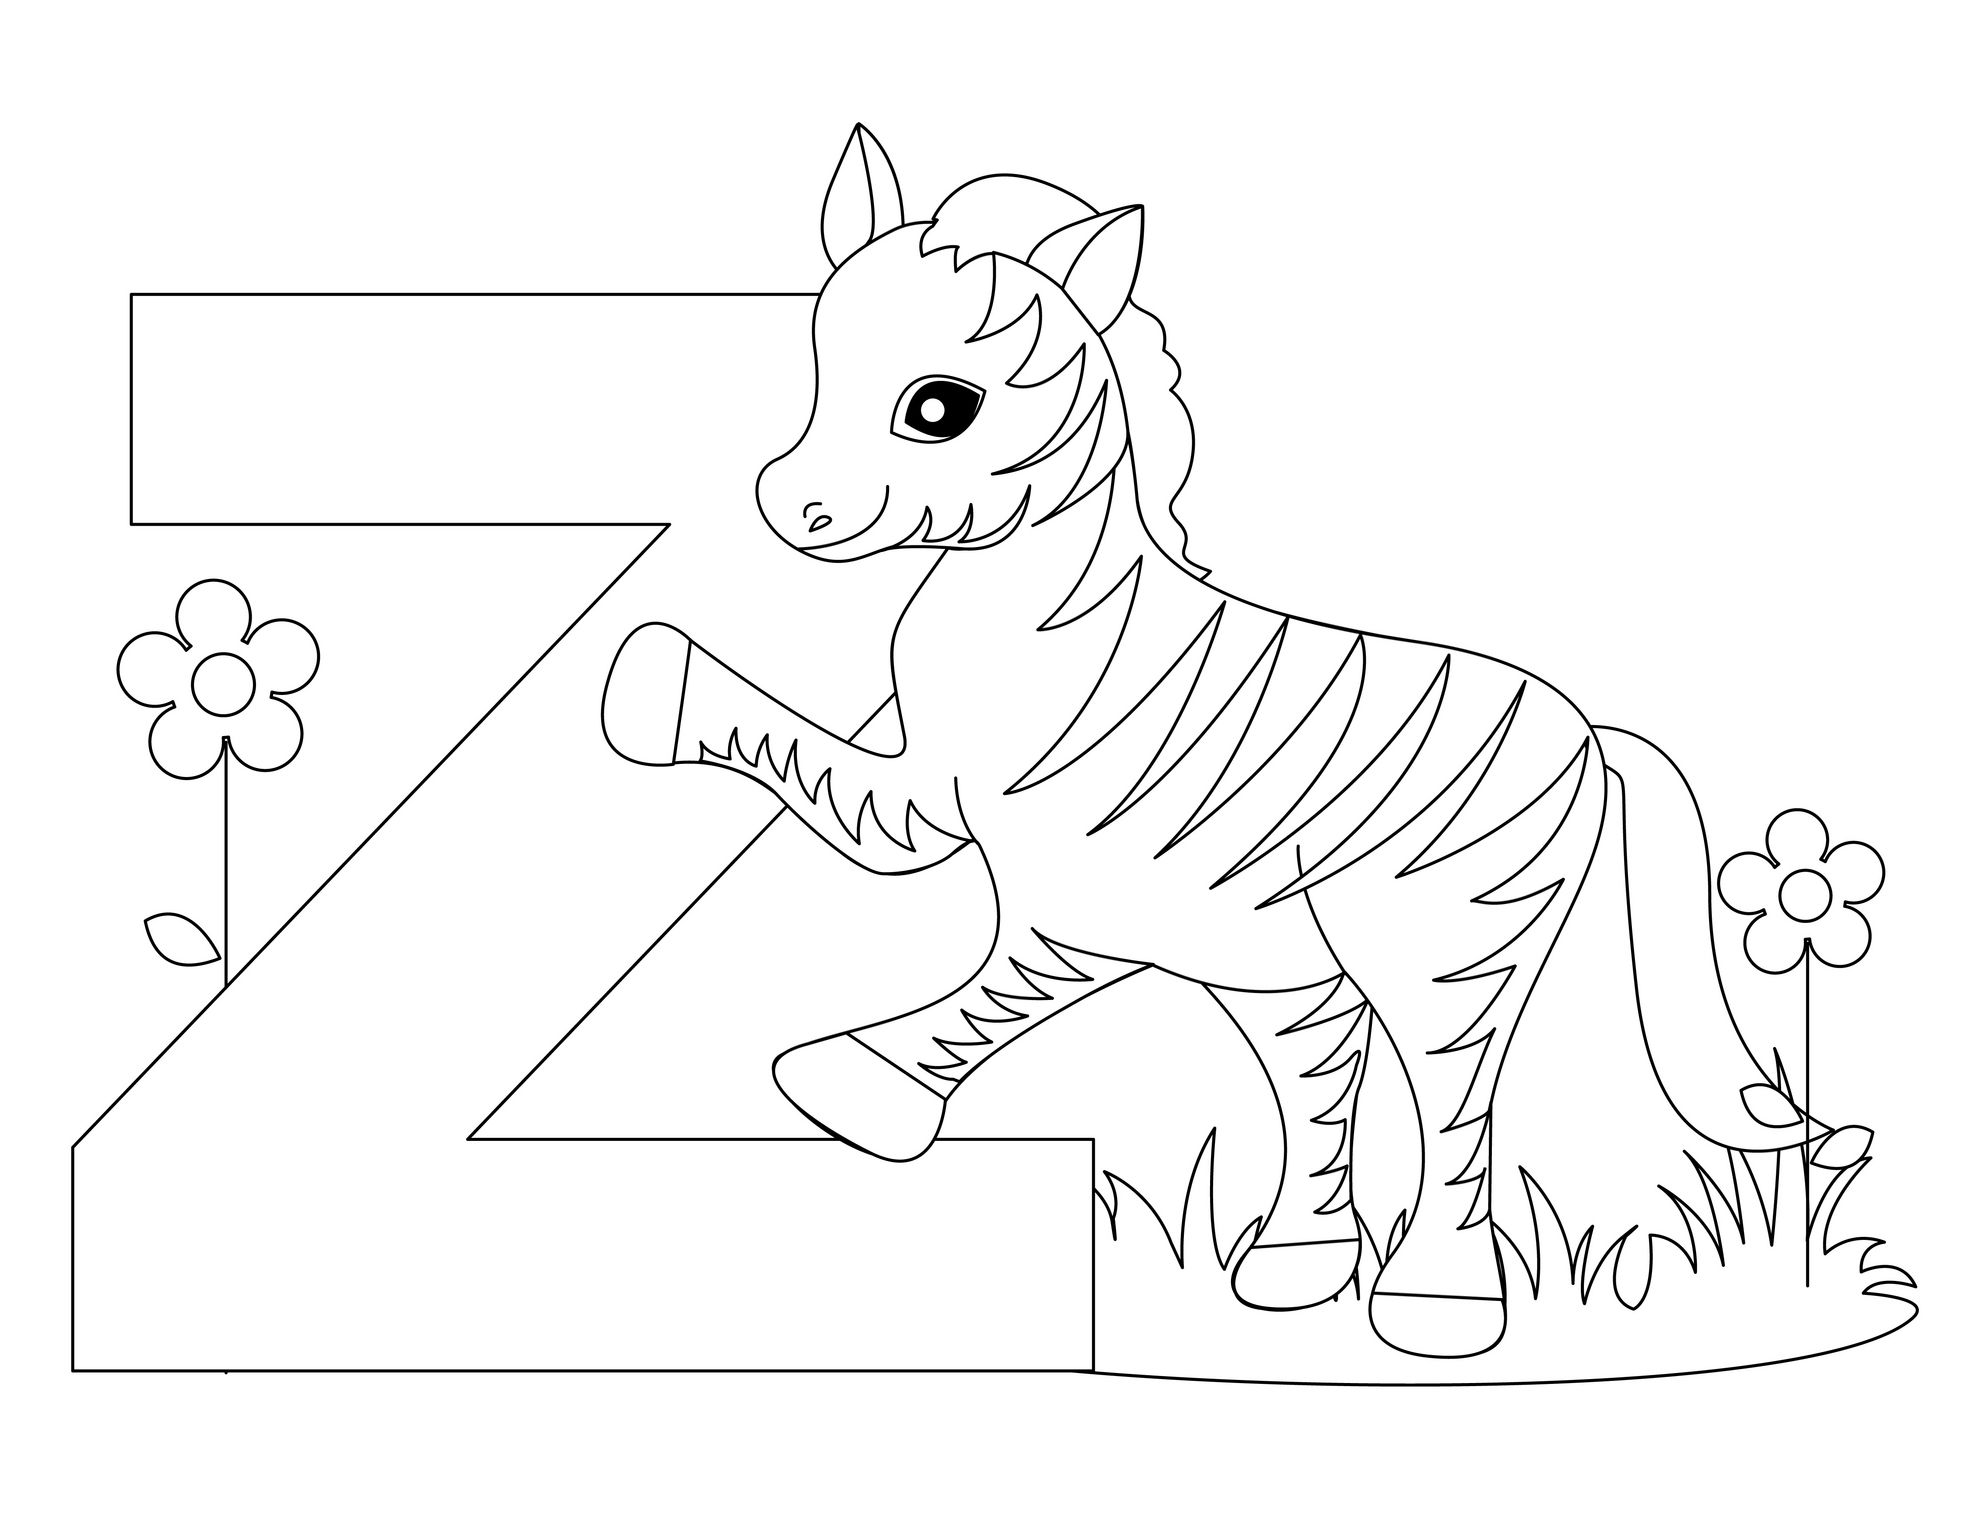 Free coloring pages alphabet letters - Printable Alphabet Letter Z Worksheet For Zebra Alphabet Letter Z Worksheet Free Learning Upper And Lowercase Letters Worksheets For Kids